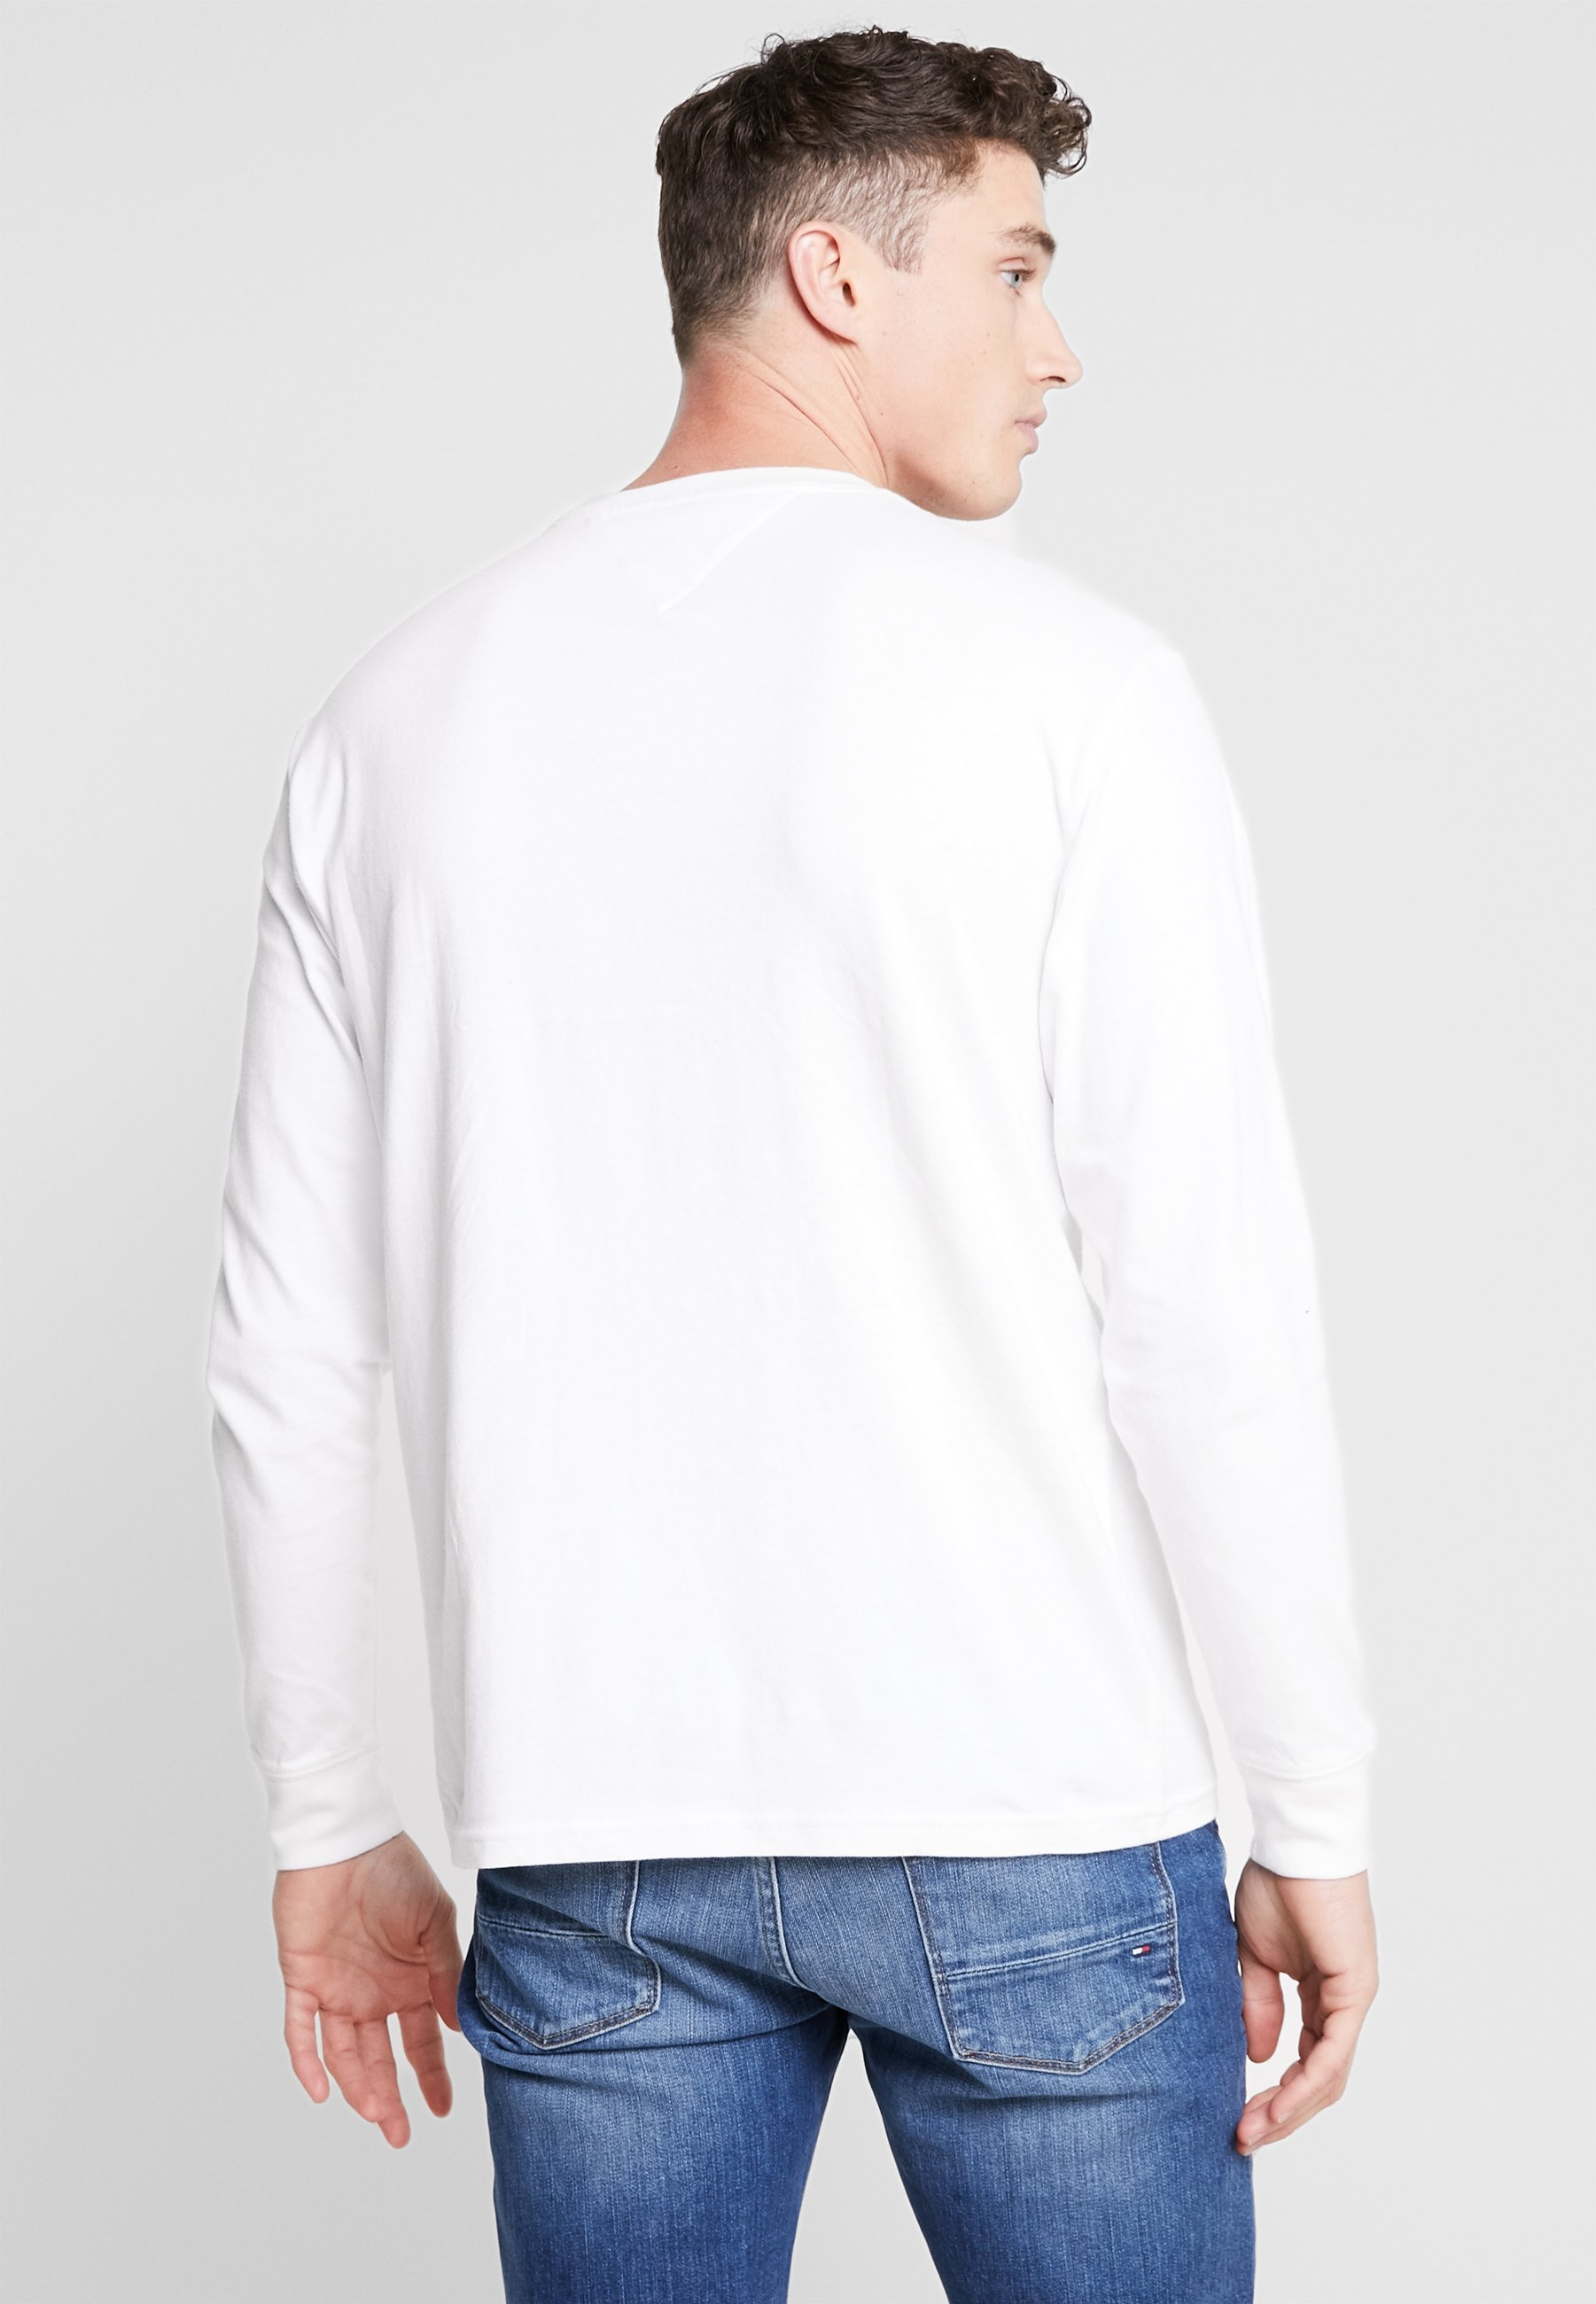 Sleeve Tommy Manches TeeT White Jeans shirt Longues À Corp Contoured If6gvYb7y